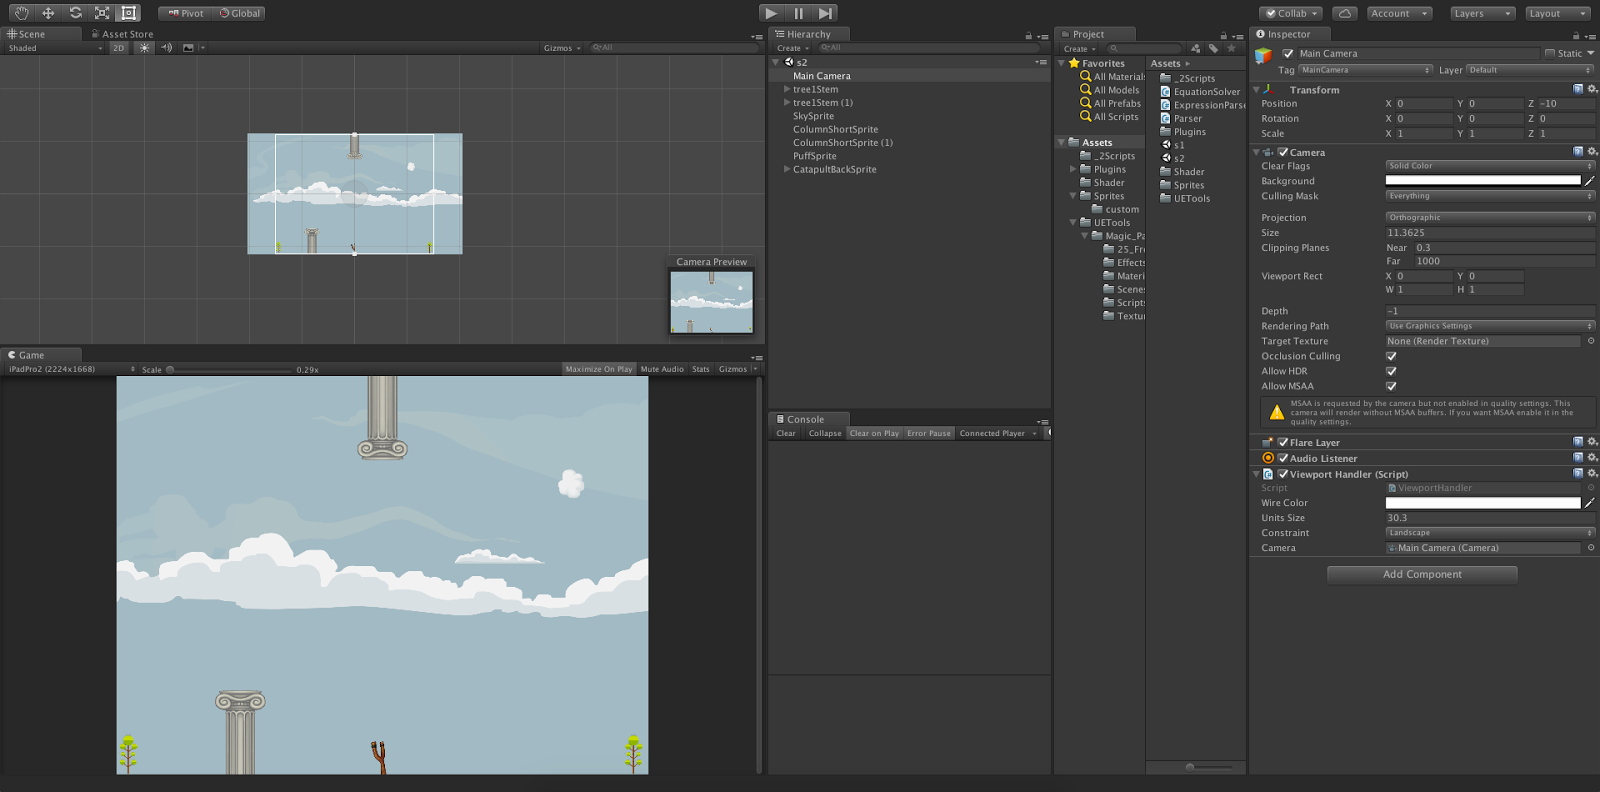 How to create 2D game in unity for all resolution devices   LetC